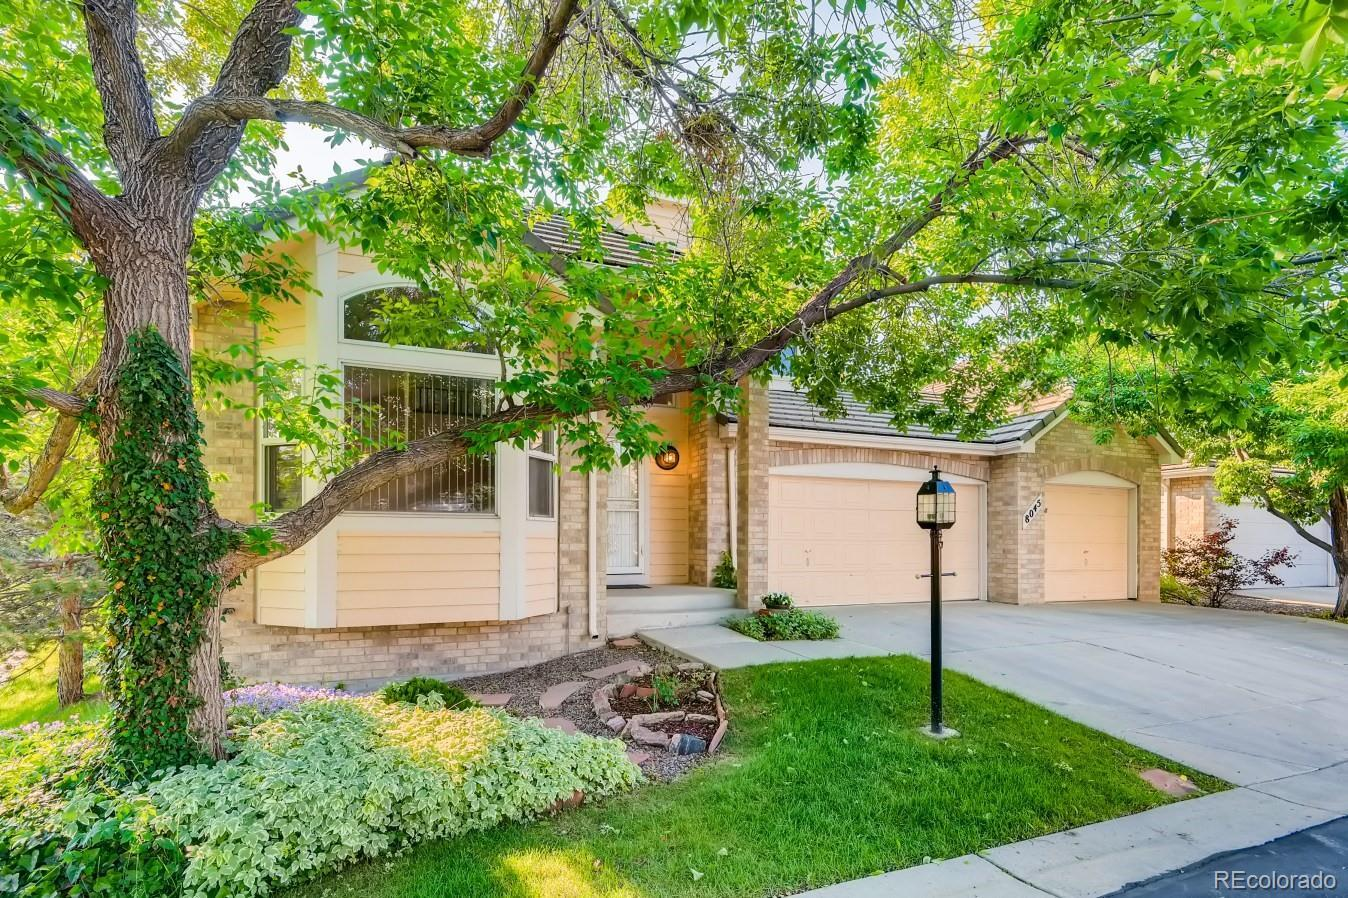 8045 W 78th Place, Arvada, CO 80005 - #: 4072962